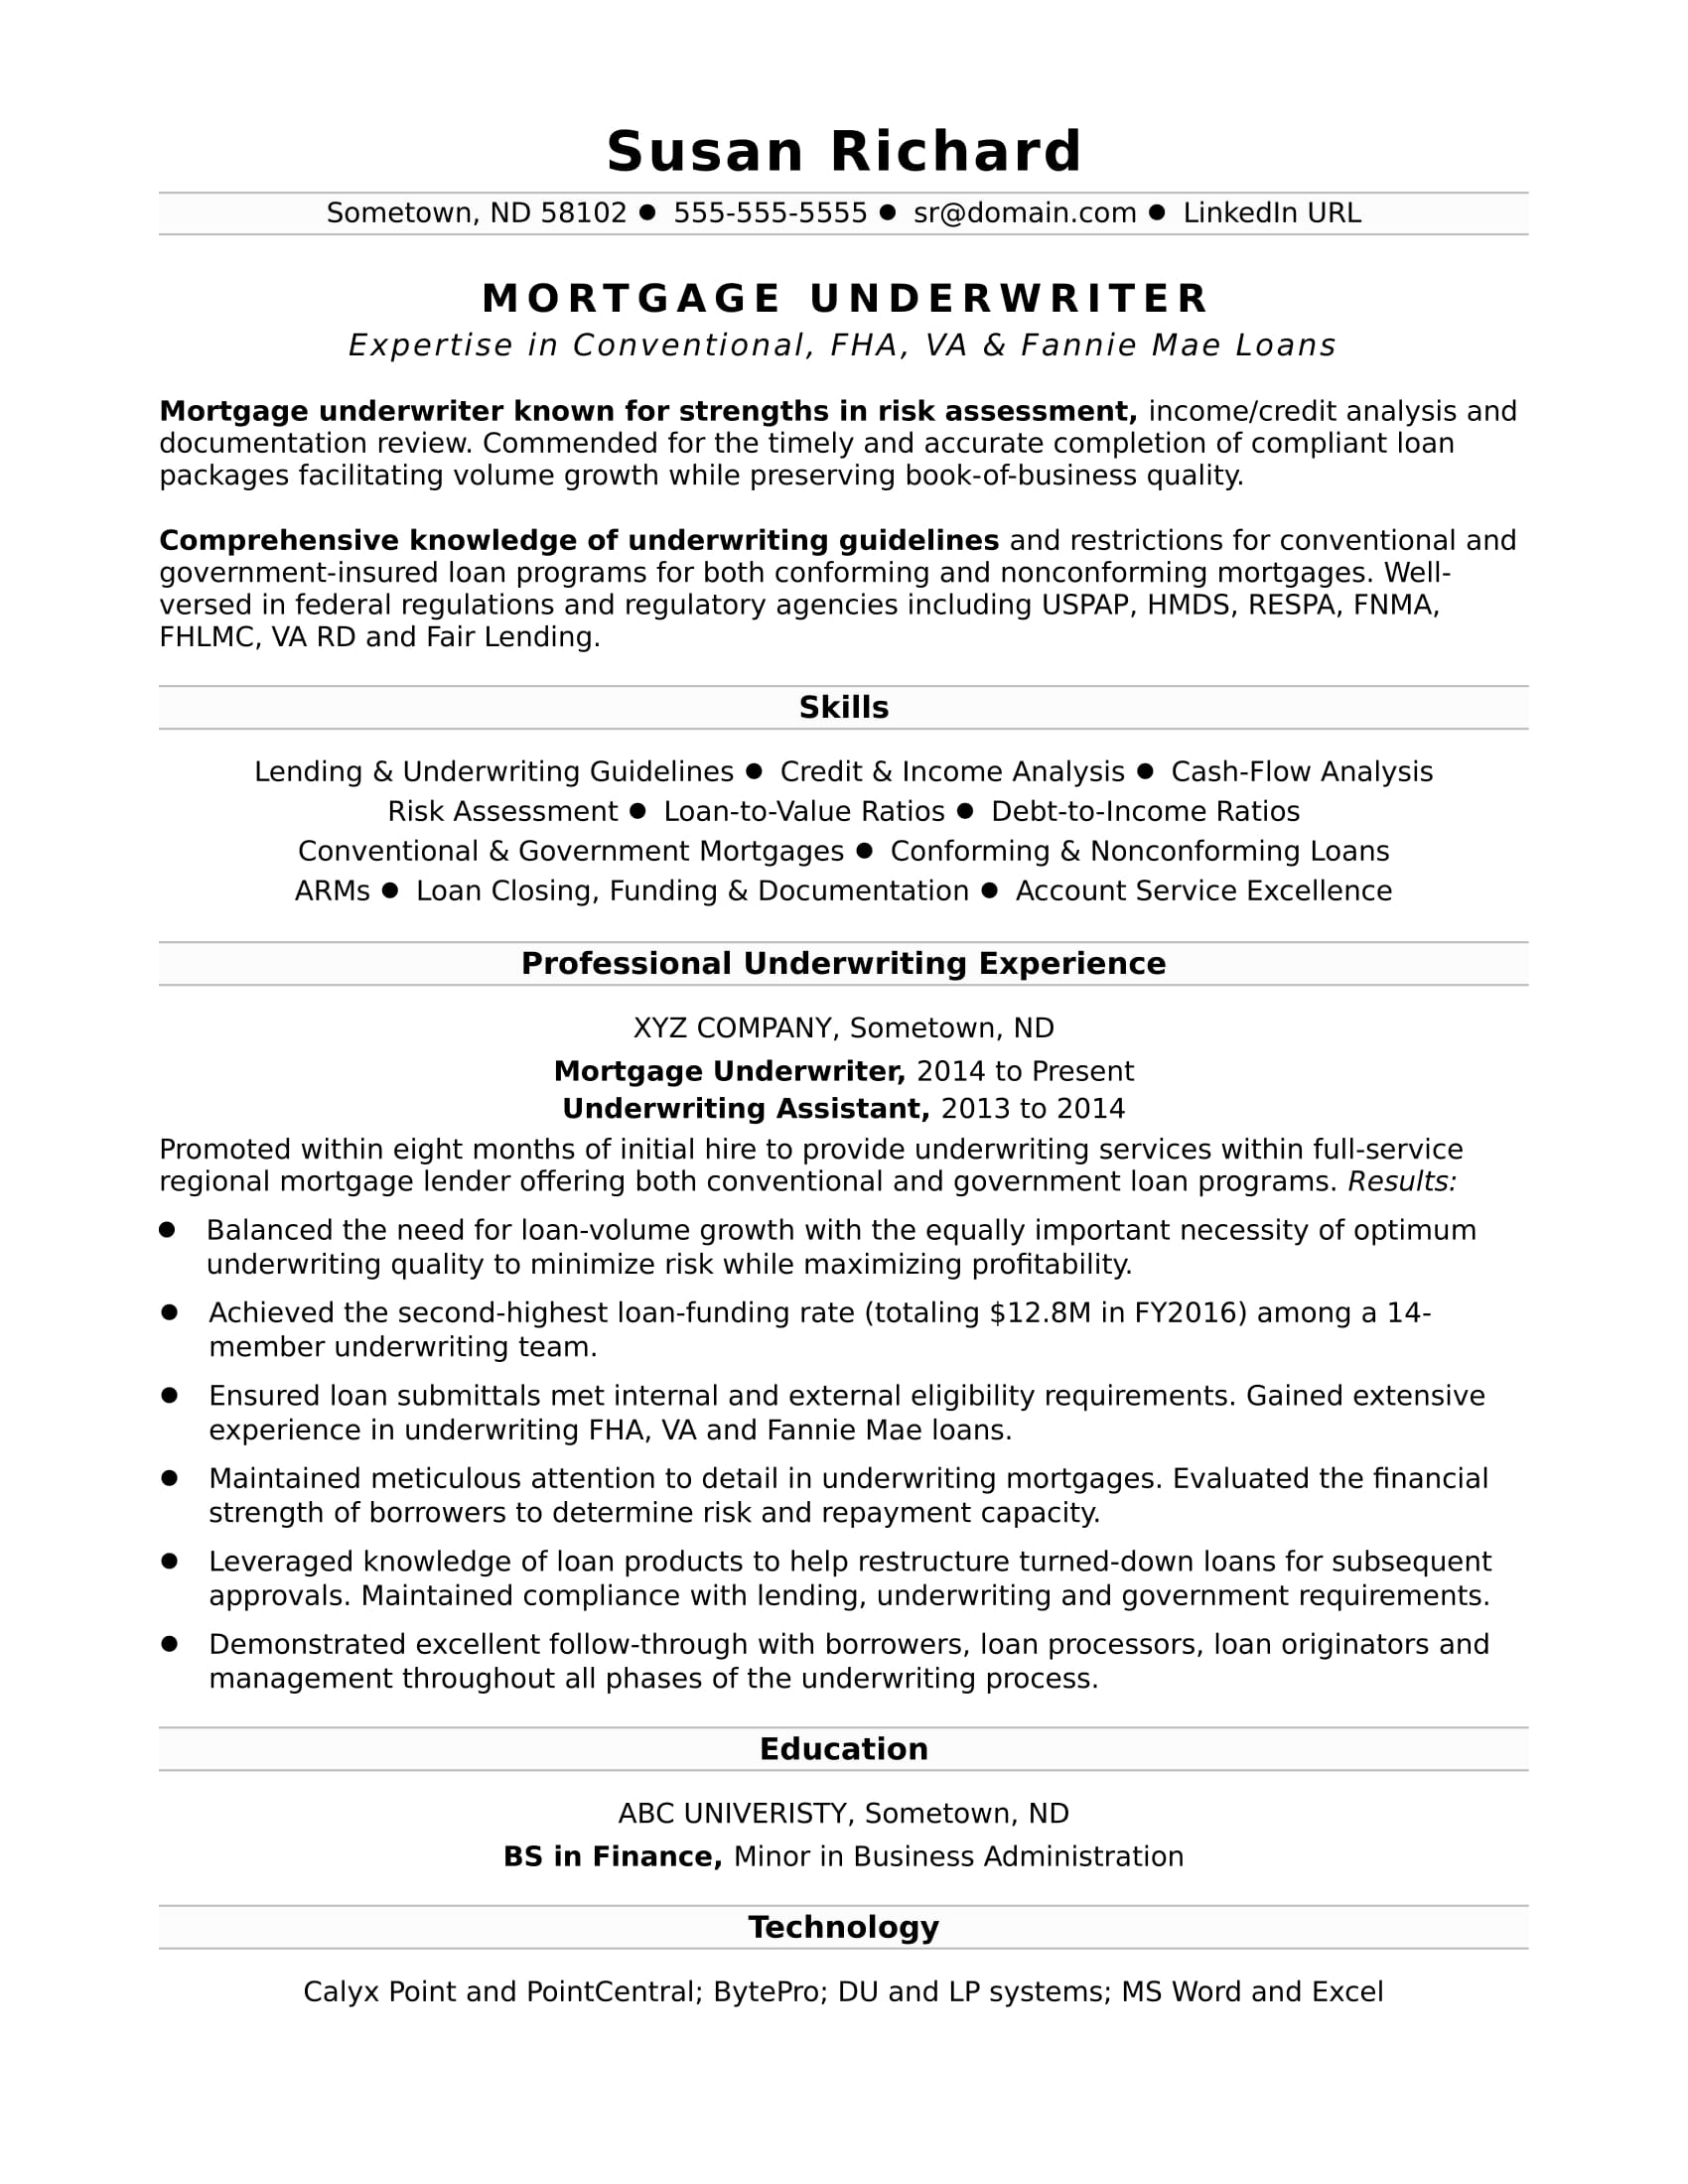 sample resume for a mortgage underwriter - Underwriter Resume Sample